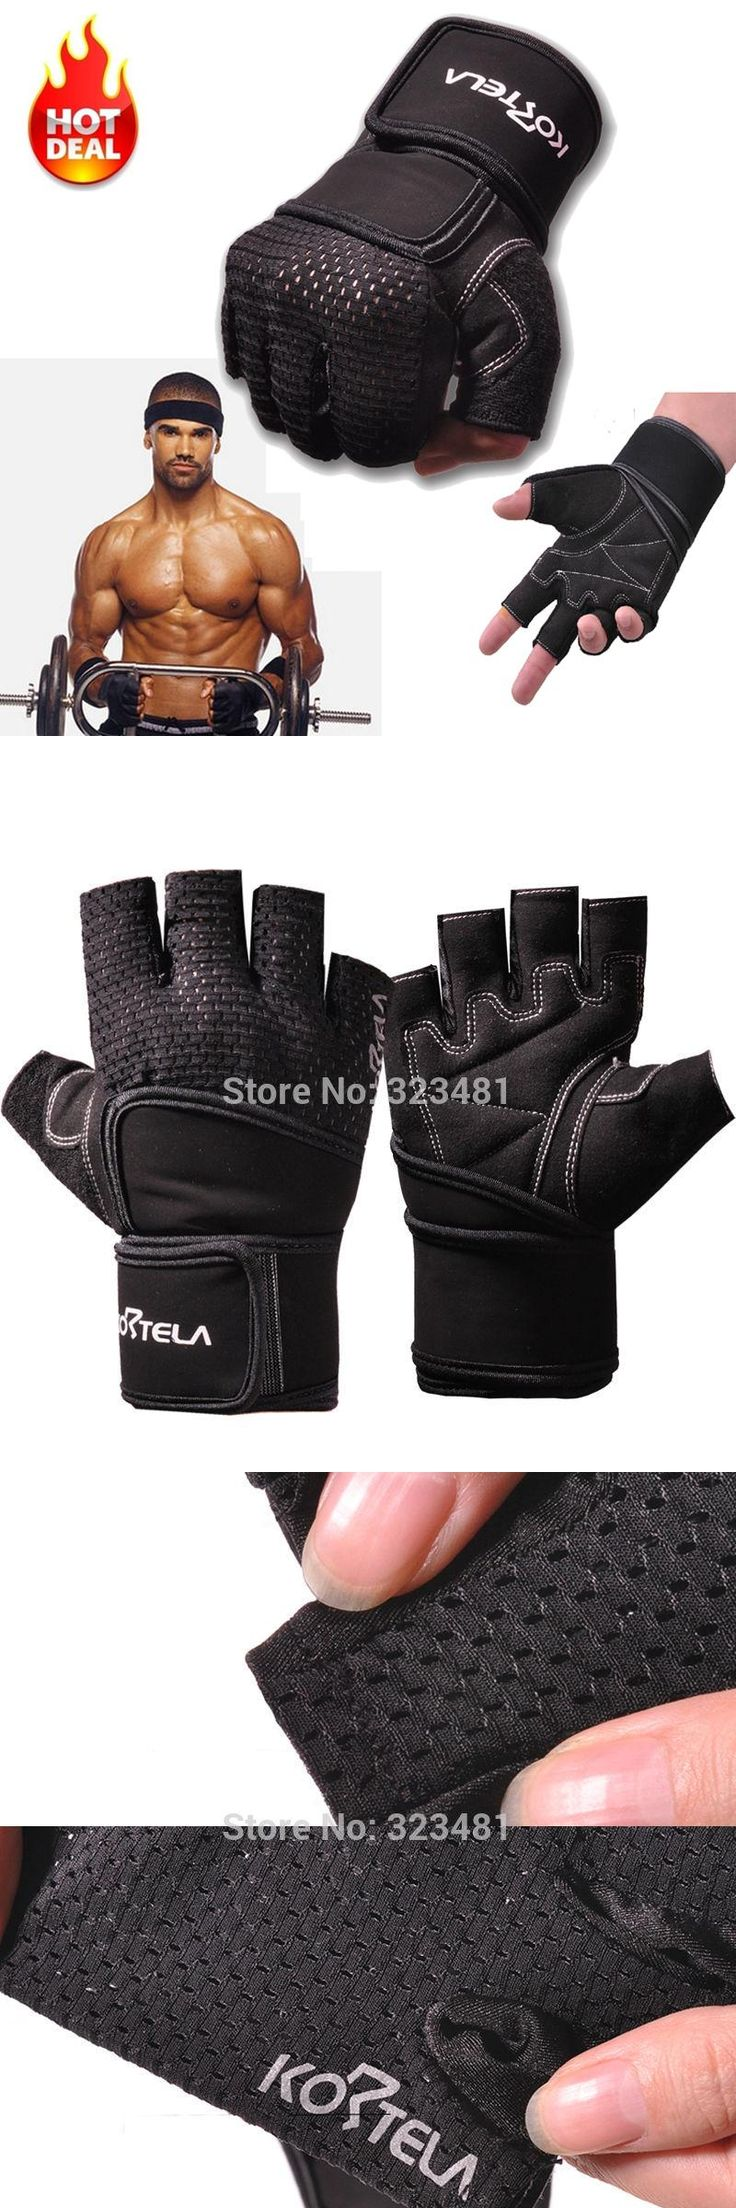 [Visit to Buy] KORTELA Body Building Gym Fitness Gloves women men with Long Belt Weightlifting Crossfit Gloves Barbell Dumbbell pesas gimnasio #Advertisement